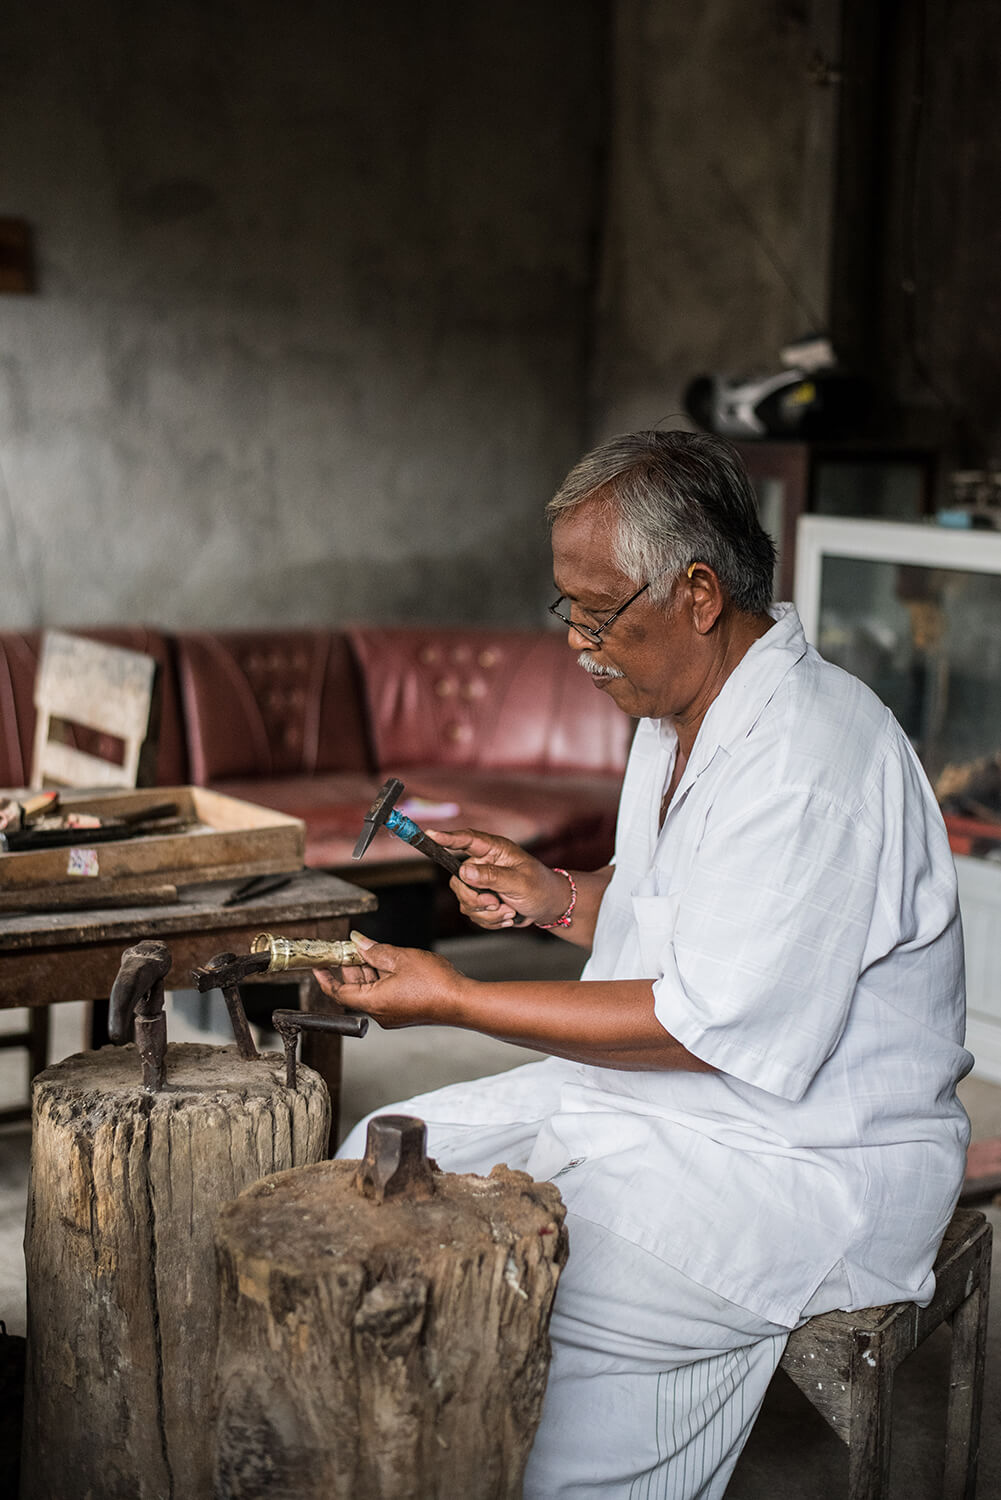 Mangku Merta of Bangli specializes in creating traditional keris handles in brass, silver and gold.